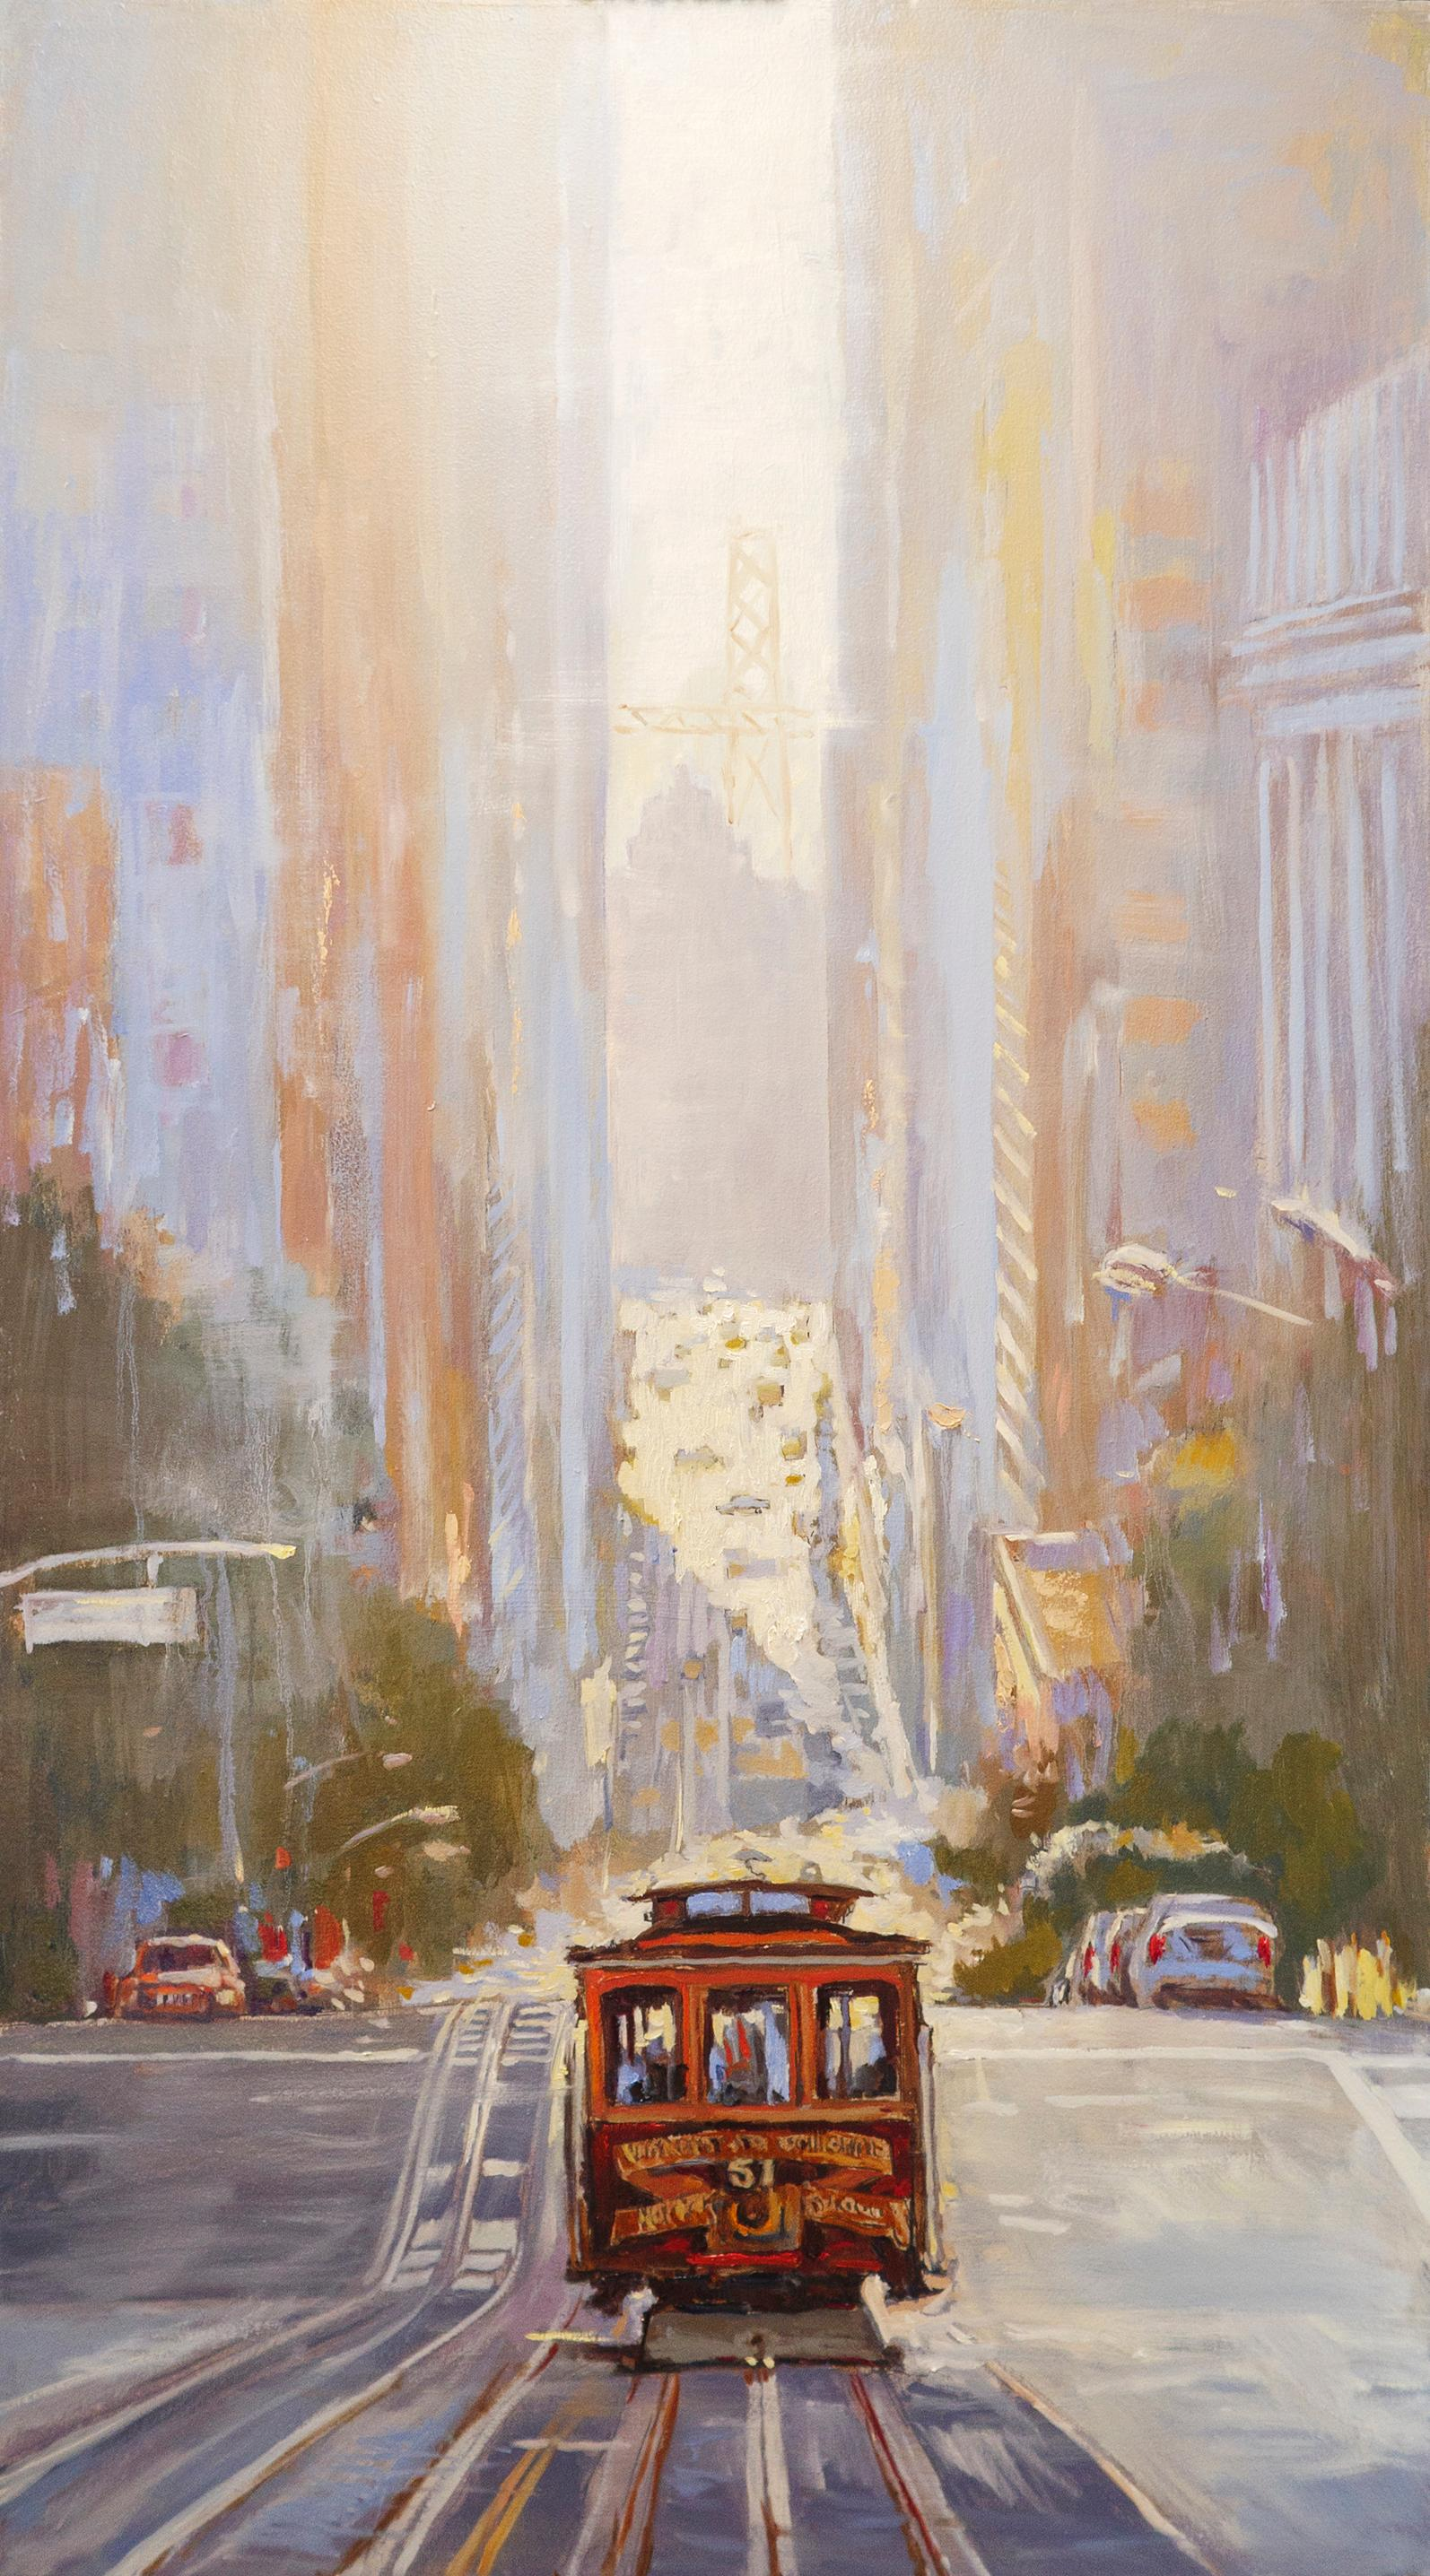 Cable Car No. 51 near Financial District, Oil Painting